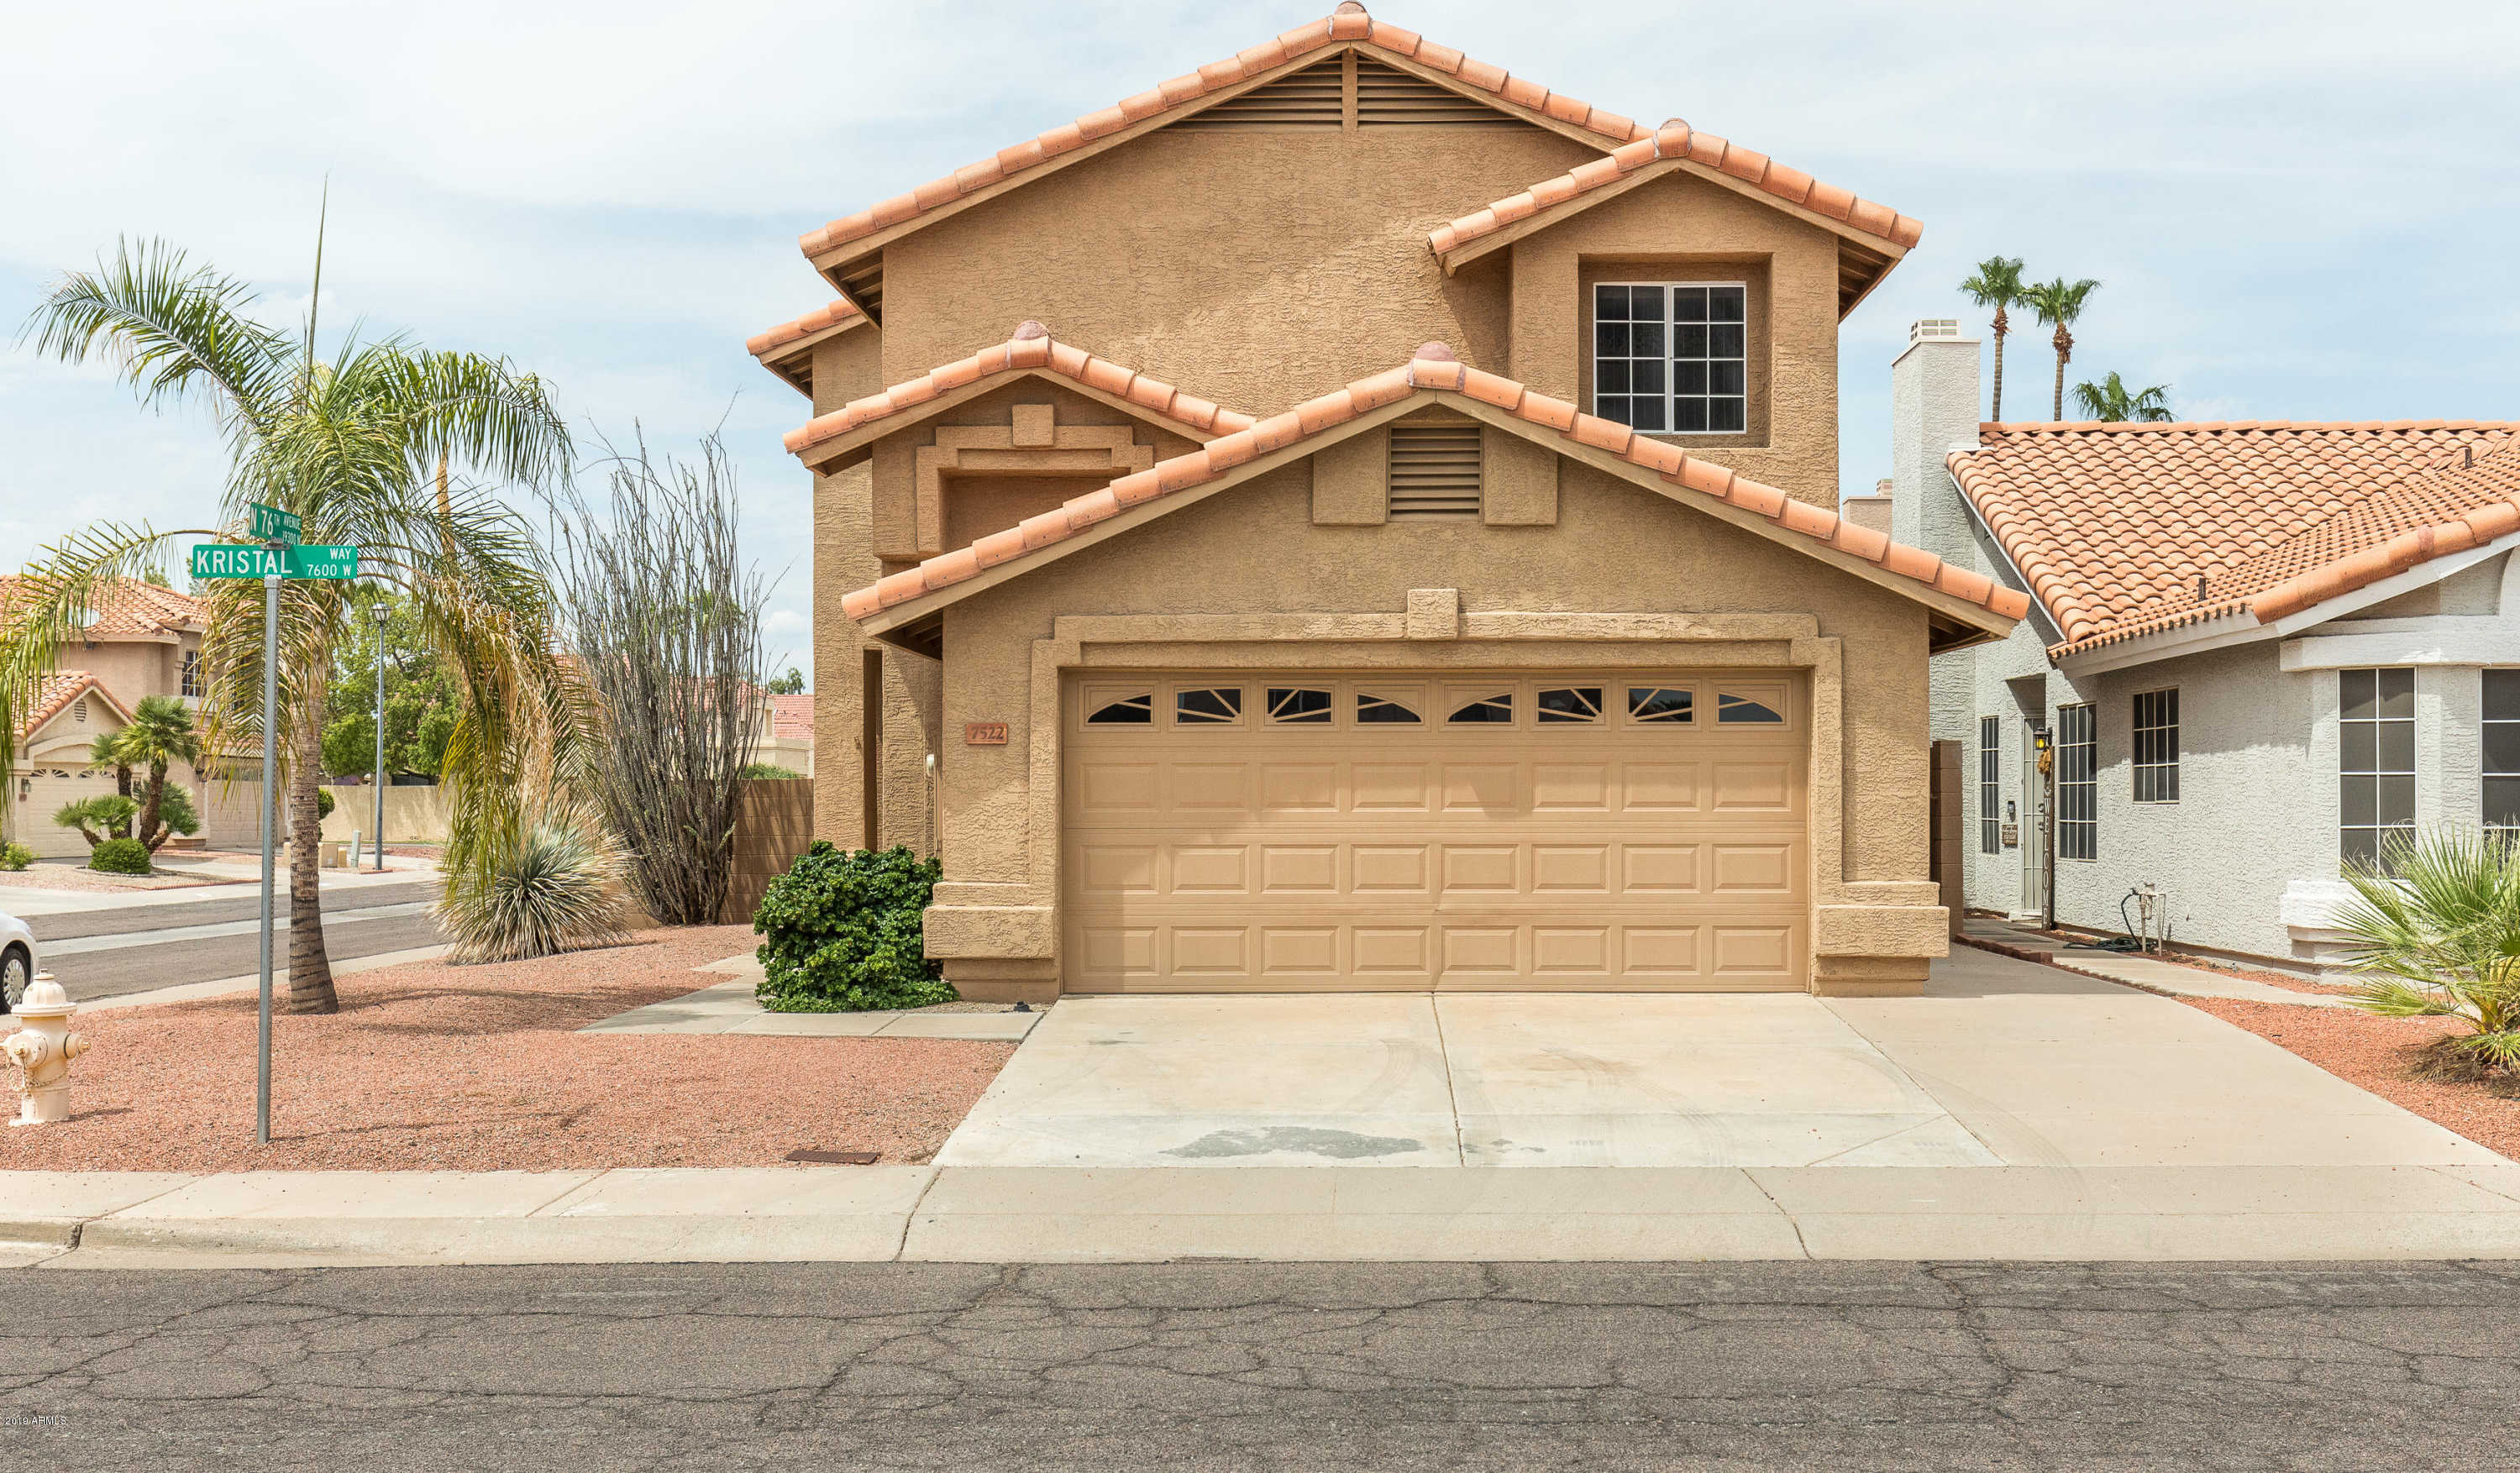 $300,000 - 4Br/3Ba - Home for Sale in Arrowhead On The Green Lot 1-325 Tr A-c, Glendale